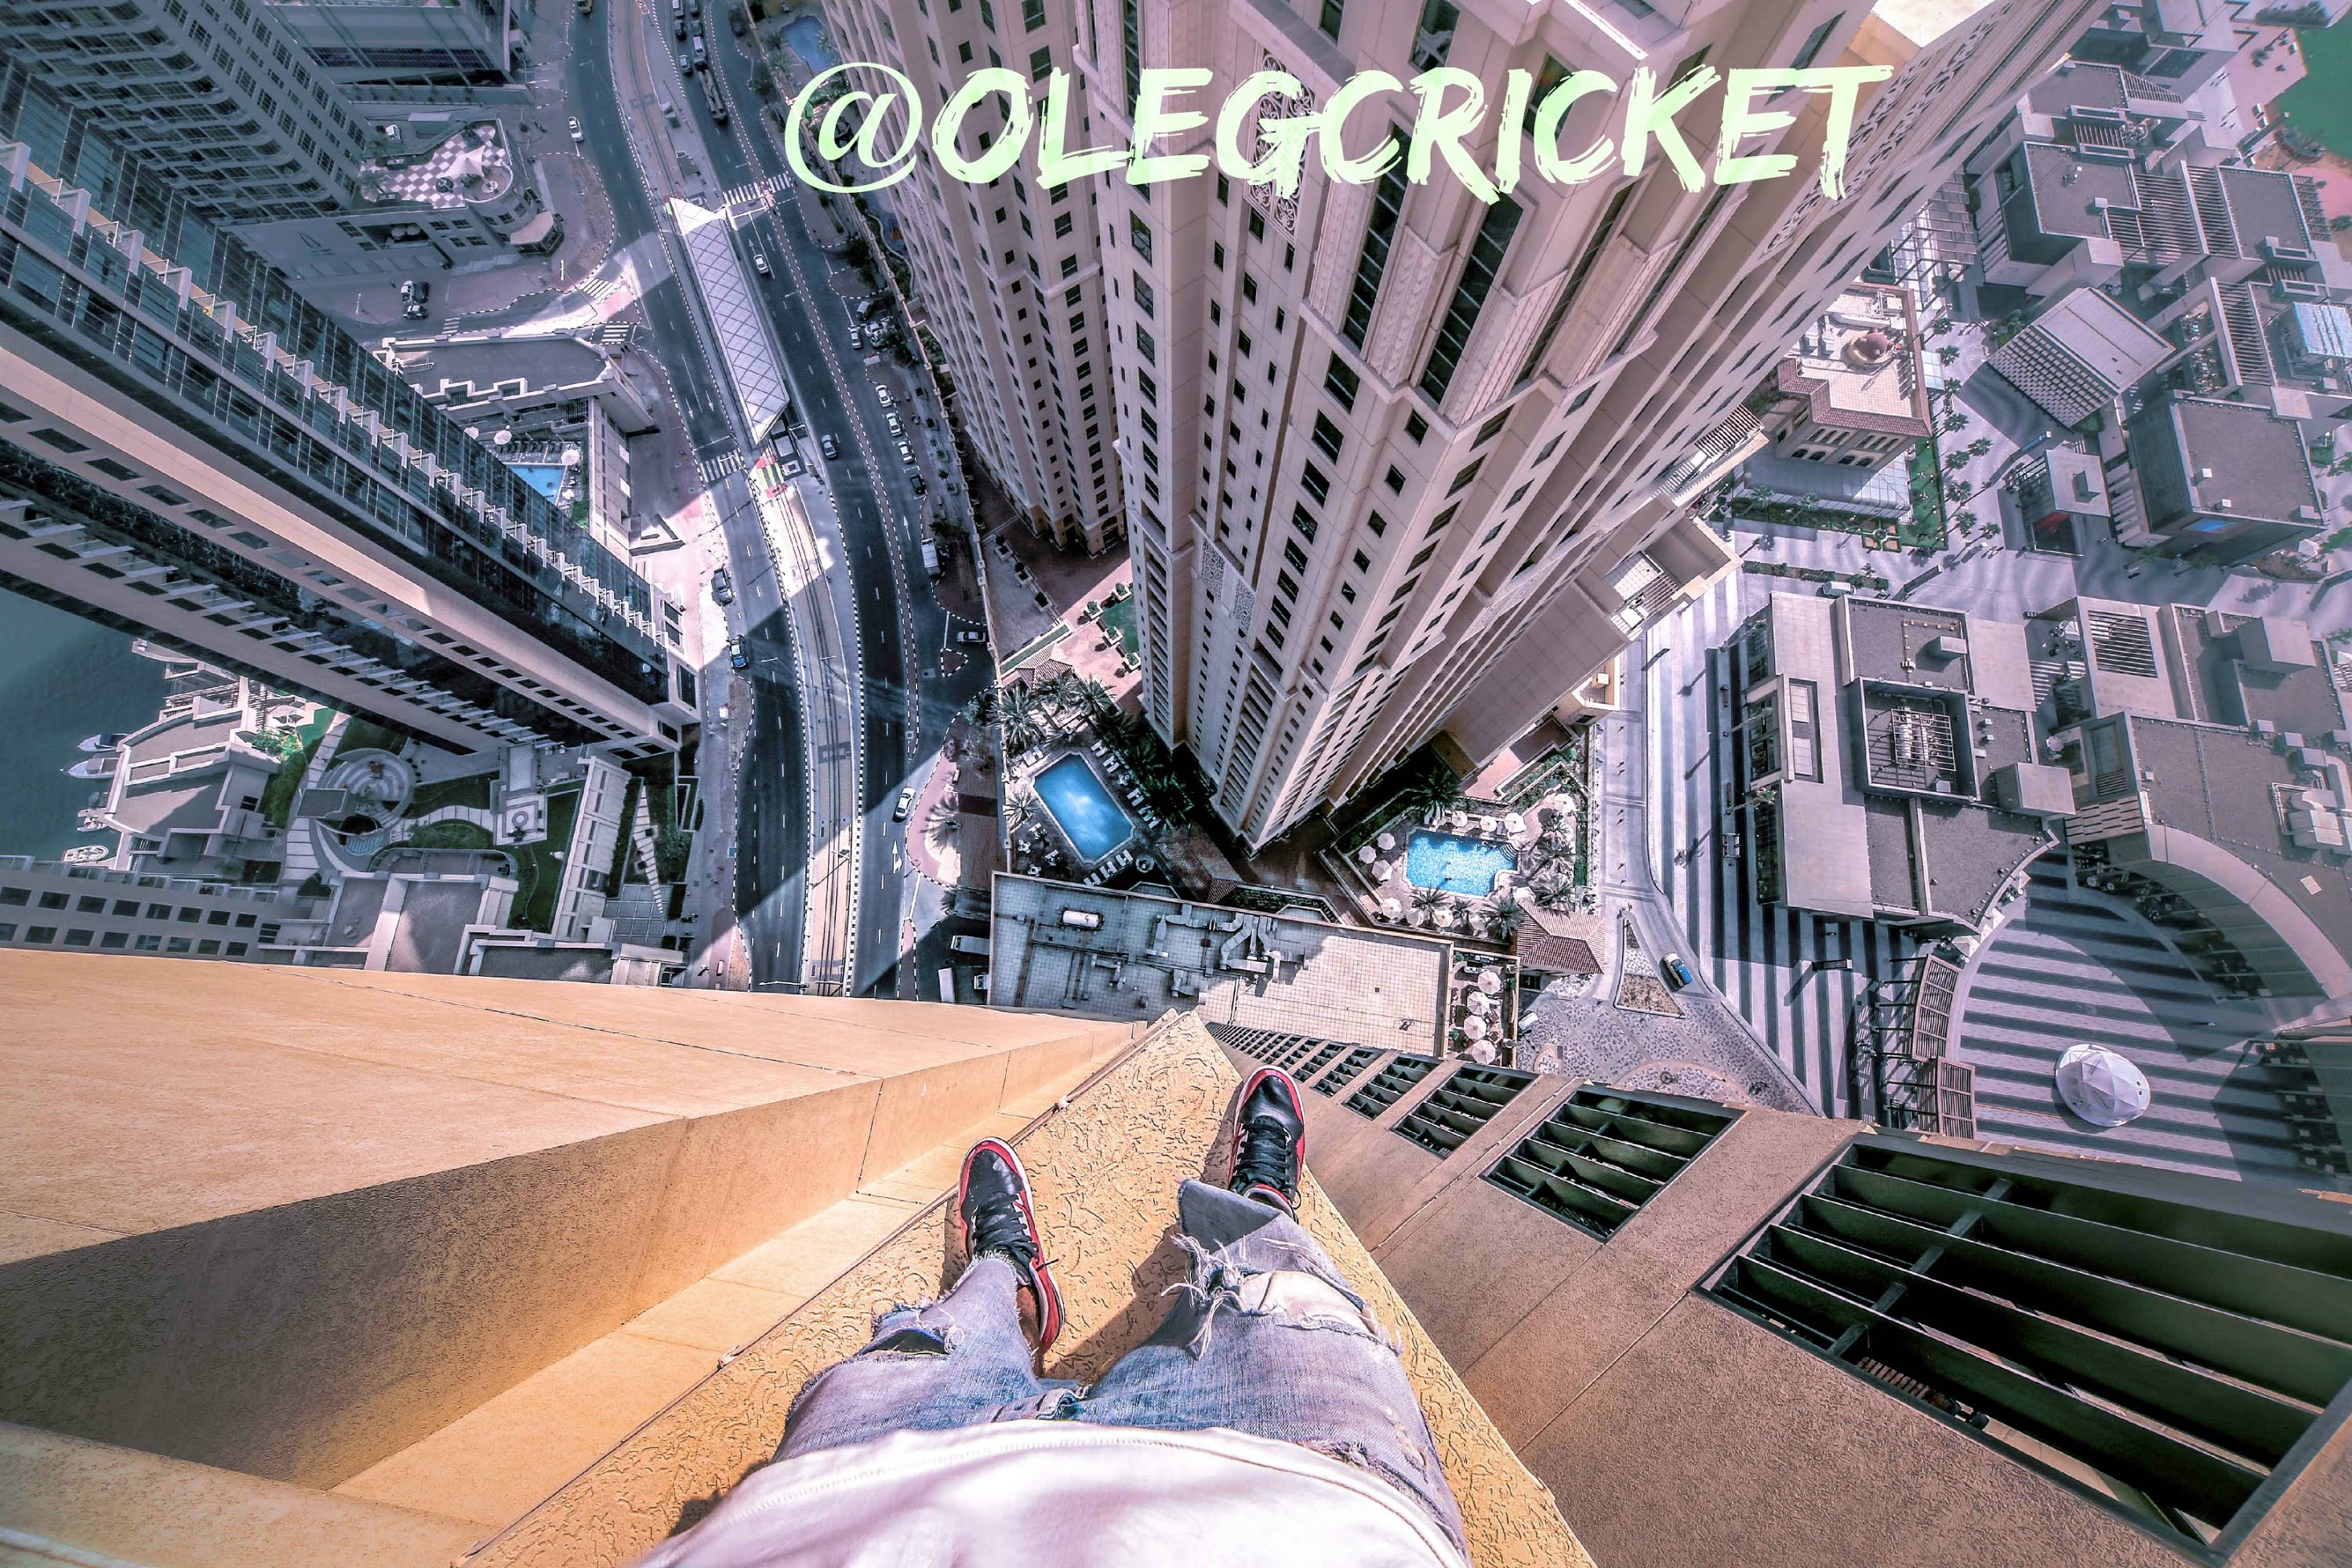 Parkour Traceur Oleg Cricket Makes An Insane Series Of Jumps From Ledge To High On A Skyscraper